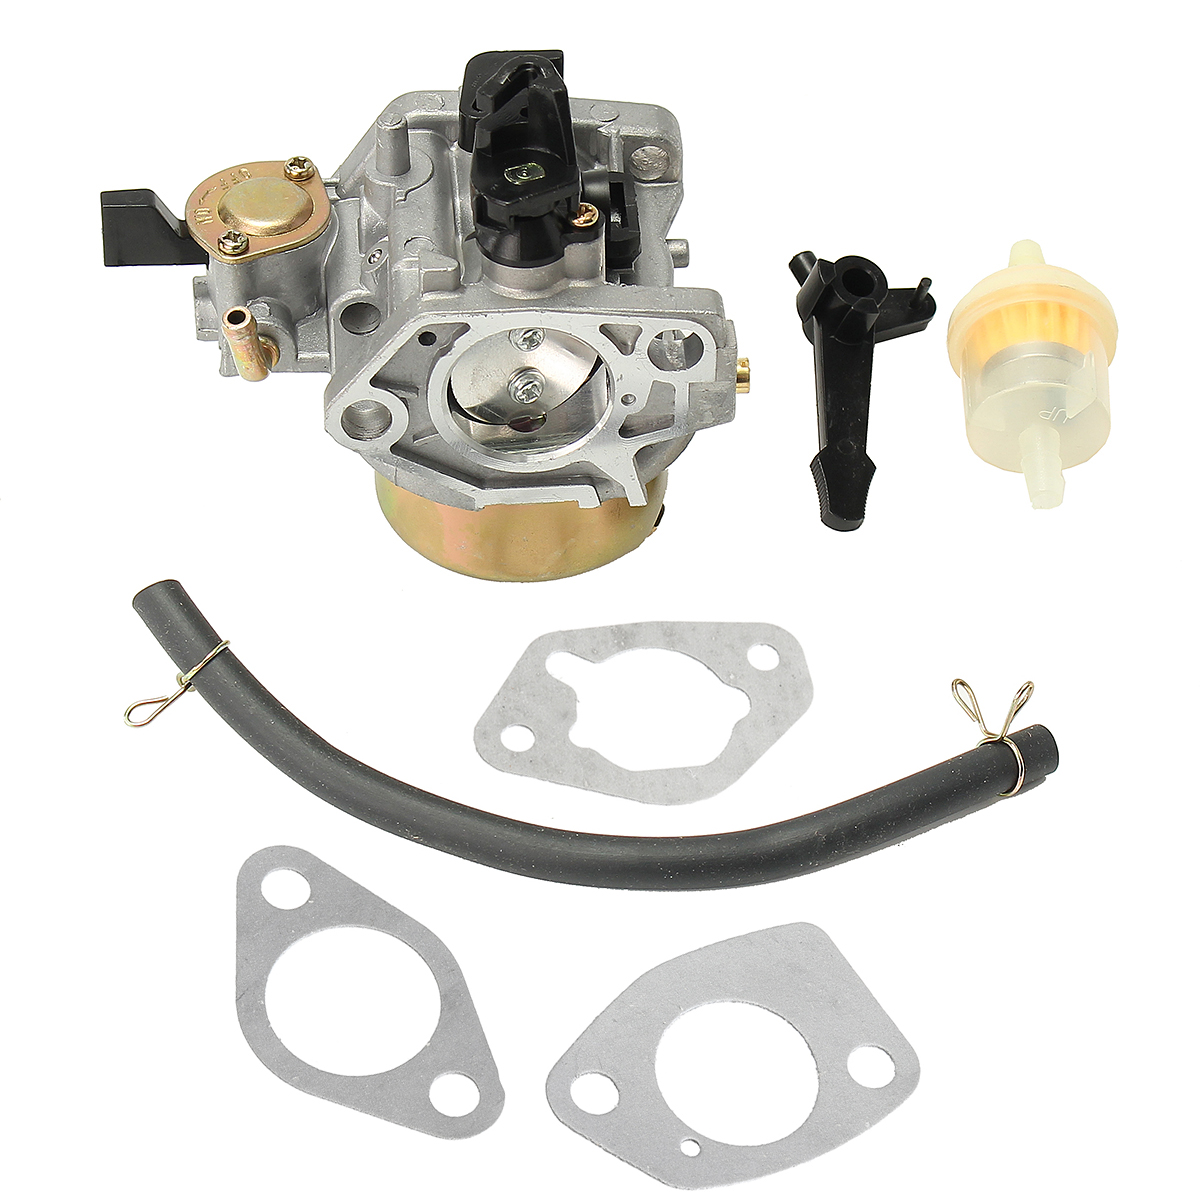 Best Price Carburetor Carb Gaskets Fuel Filter Switch Kit For Honda Gas Gx390 13h P Engines Replaces 16100